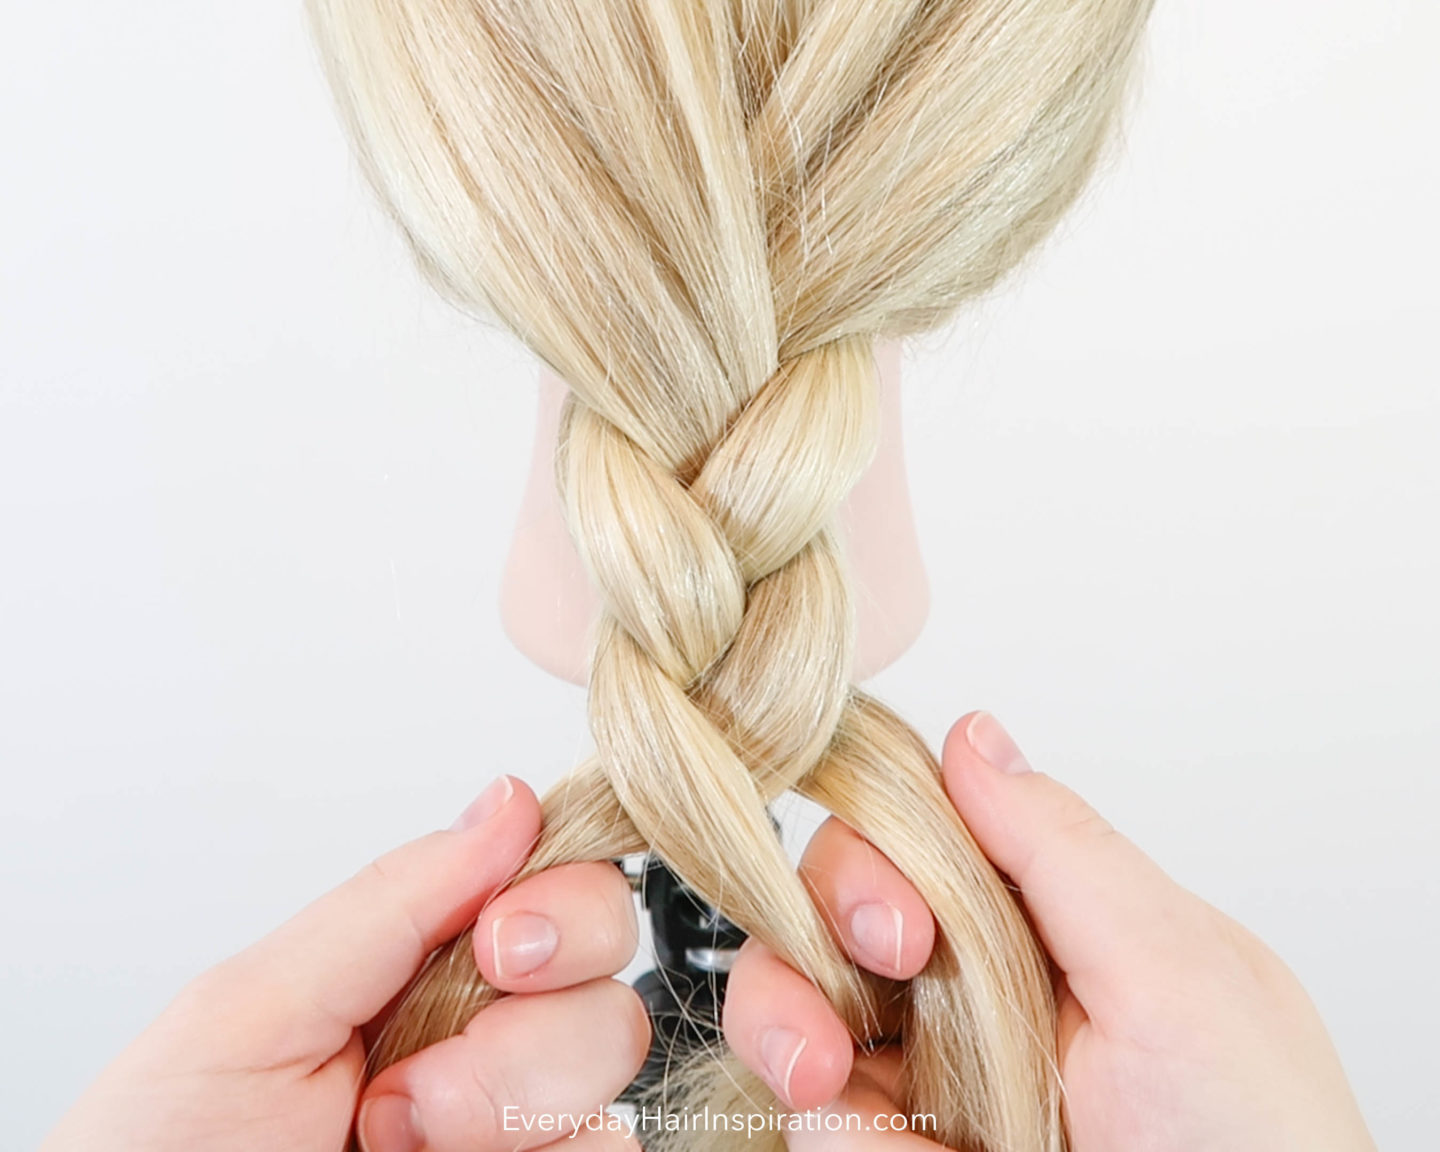 Blonde hairdresser doll with a basic braid getting braided in the hair.